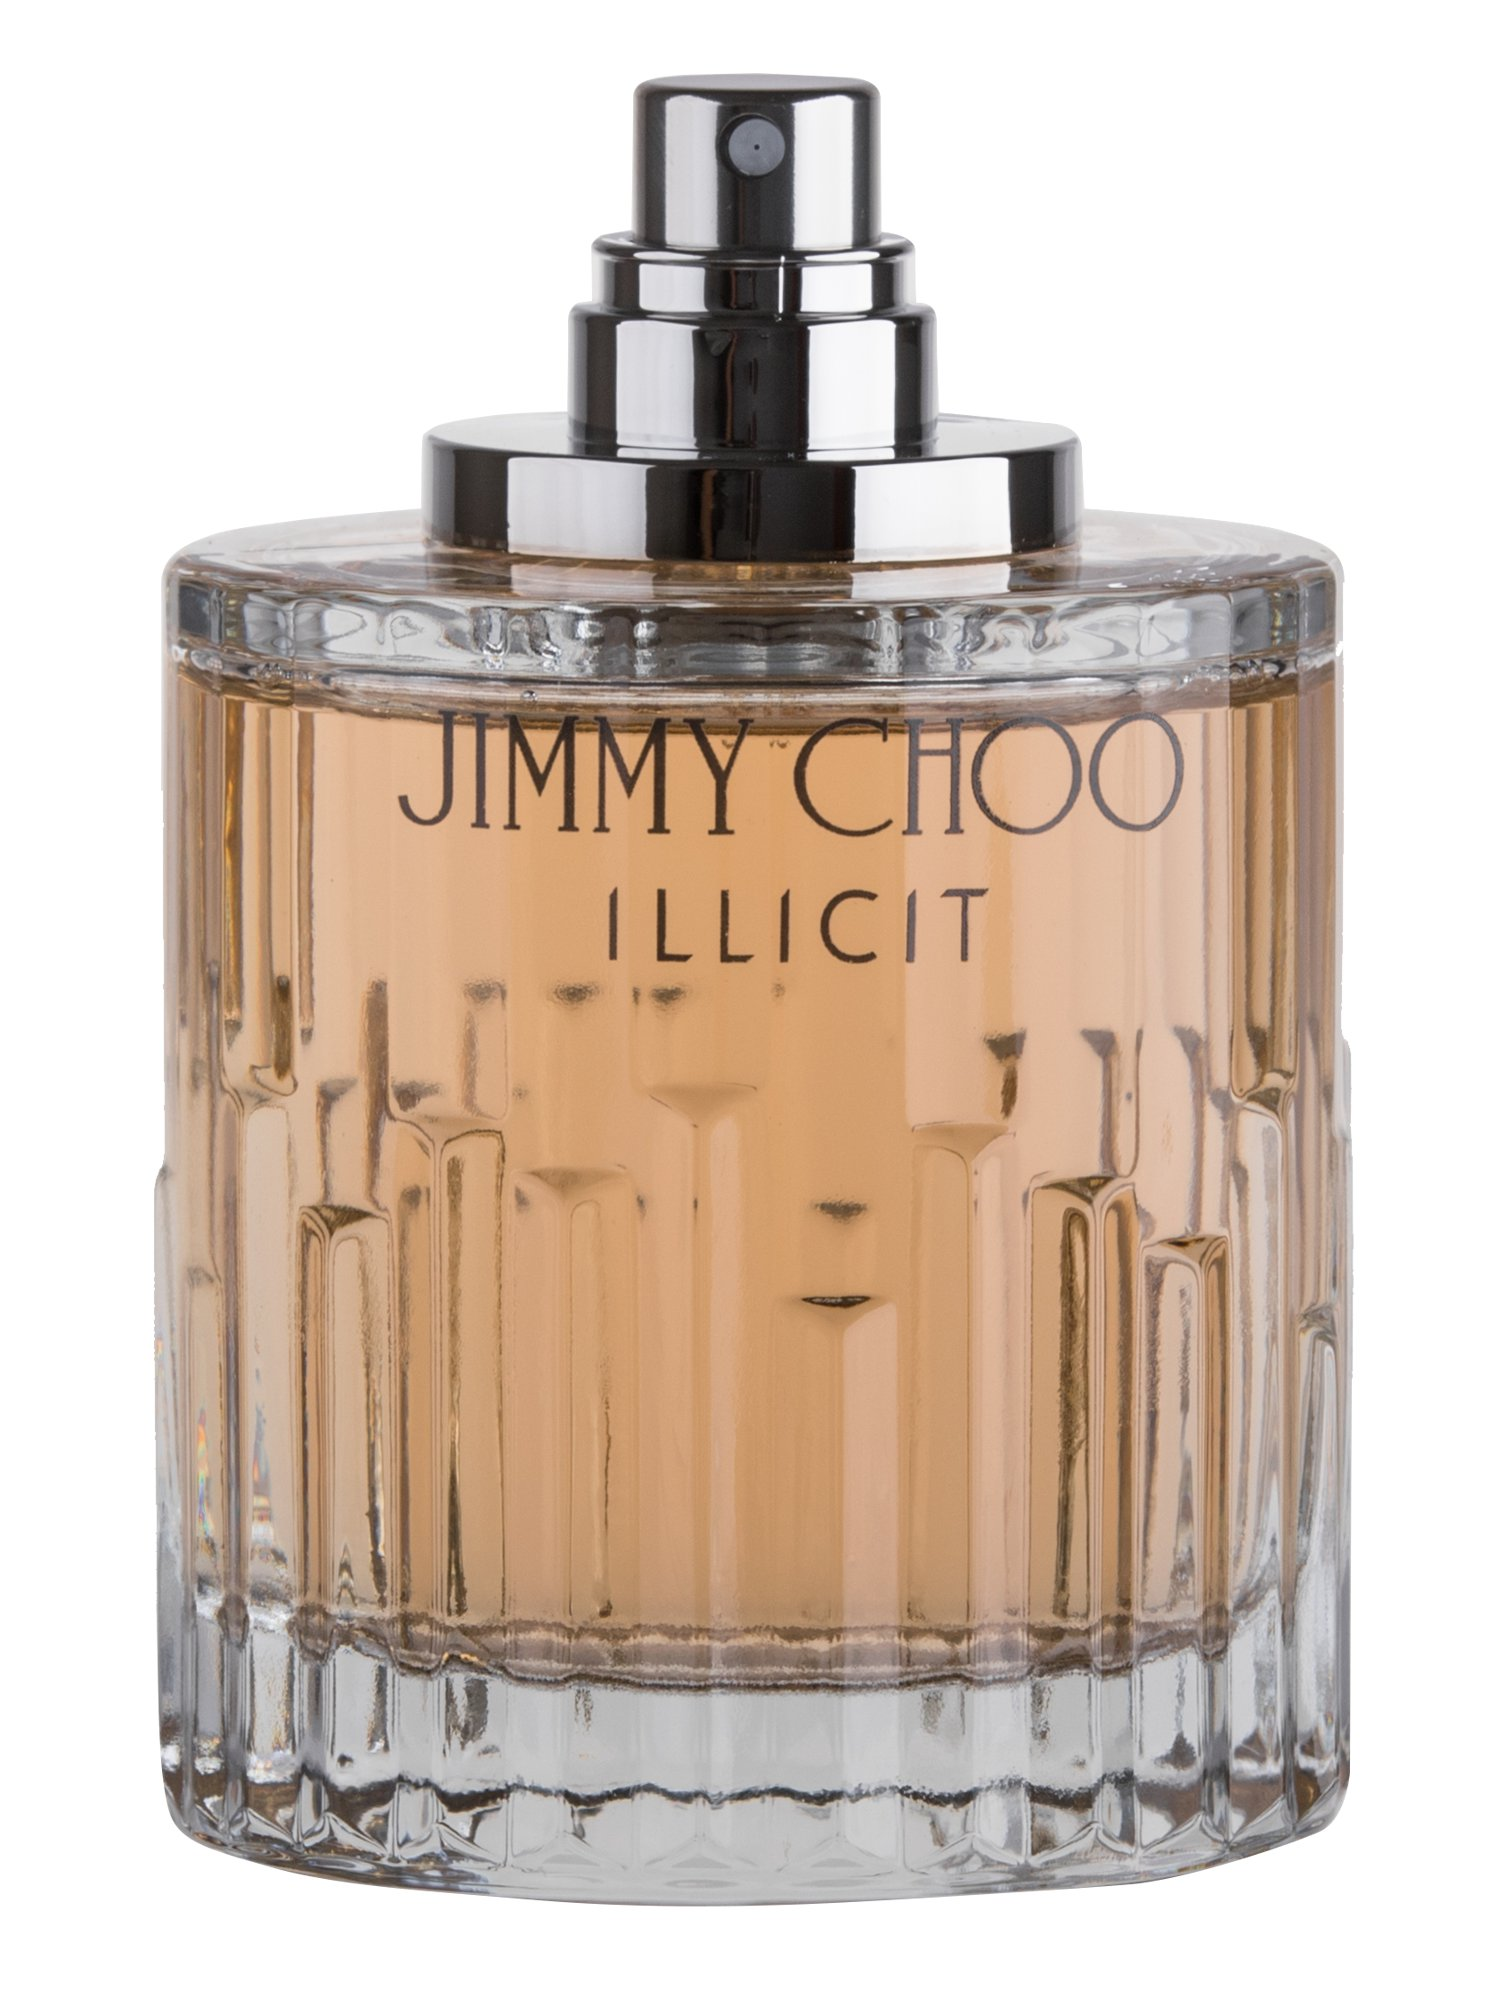 Jimmy Choo Illicit, Parfumovaná voda 100ml, Tester